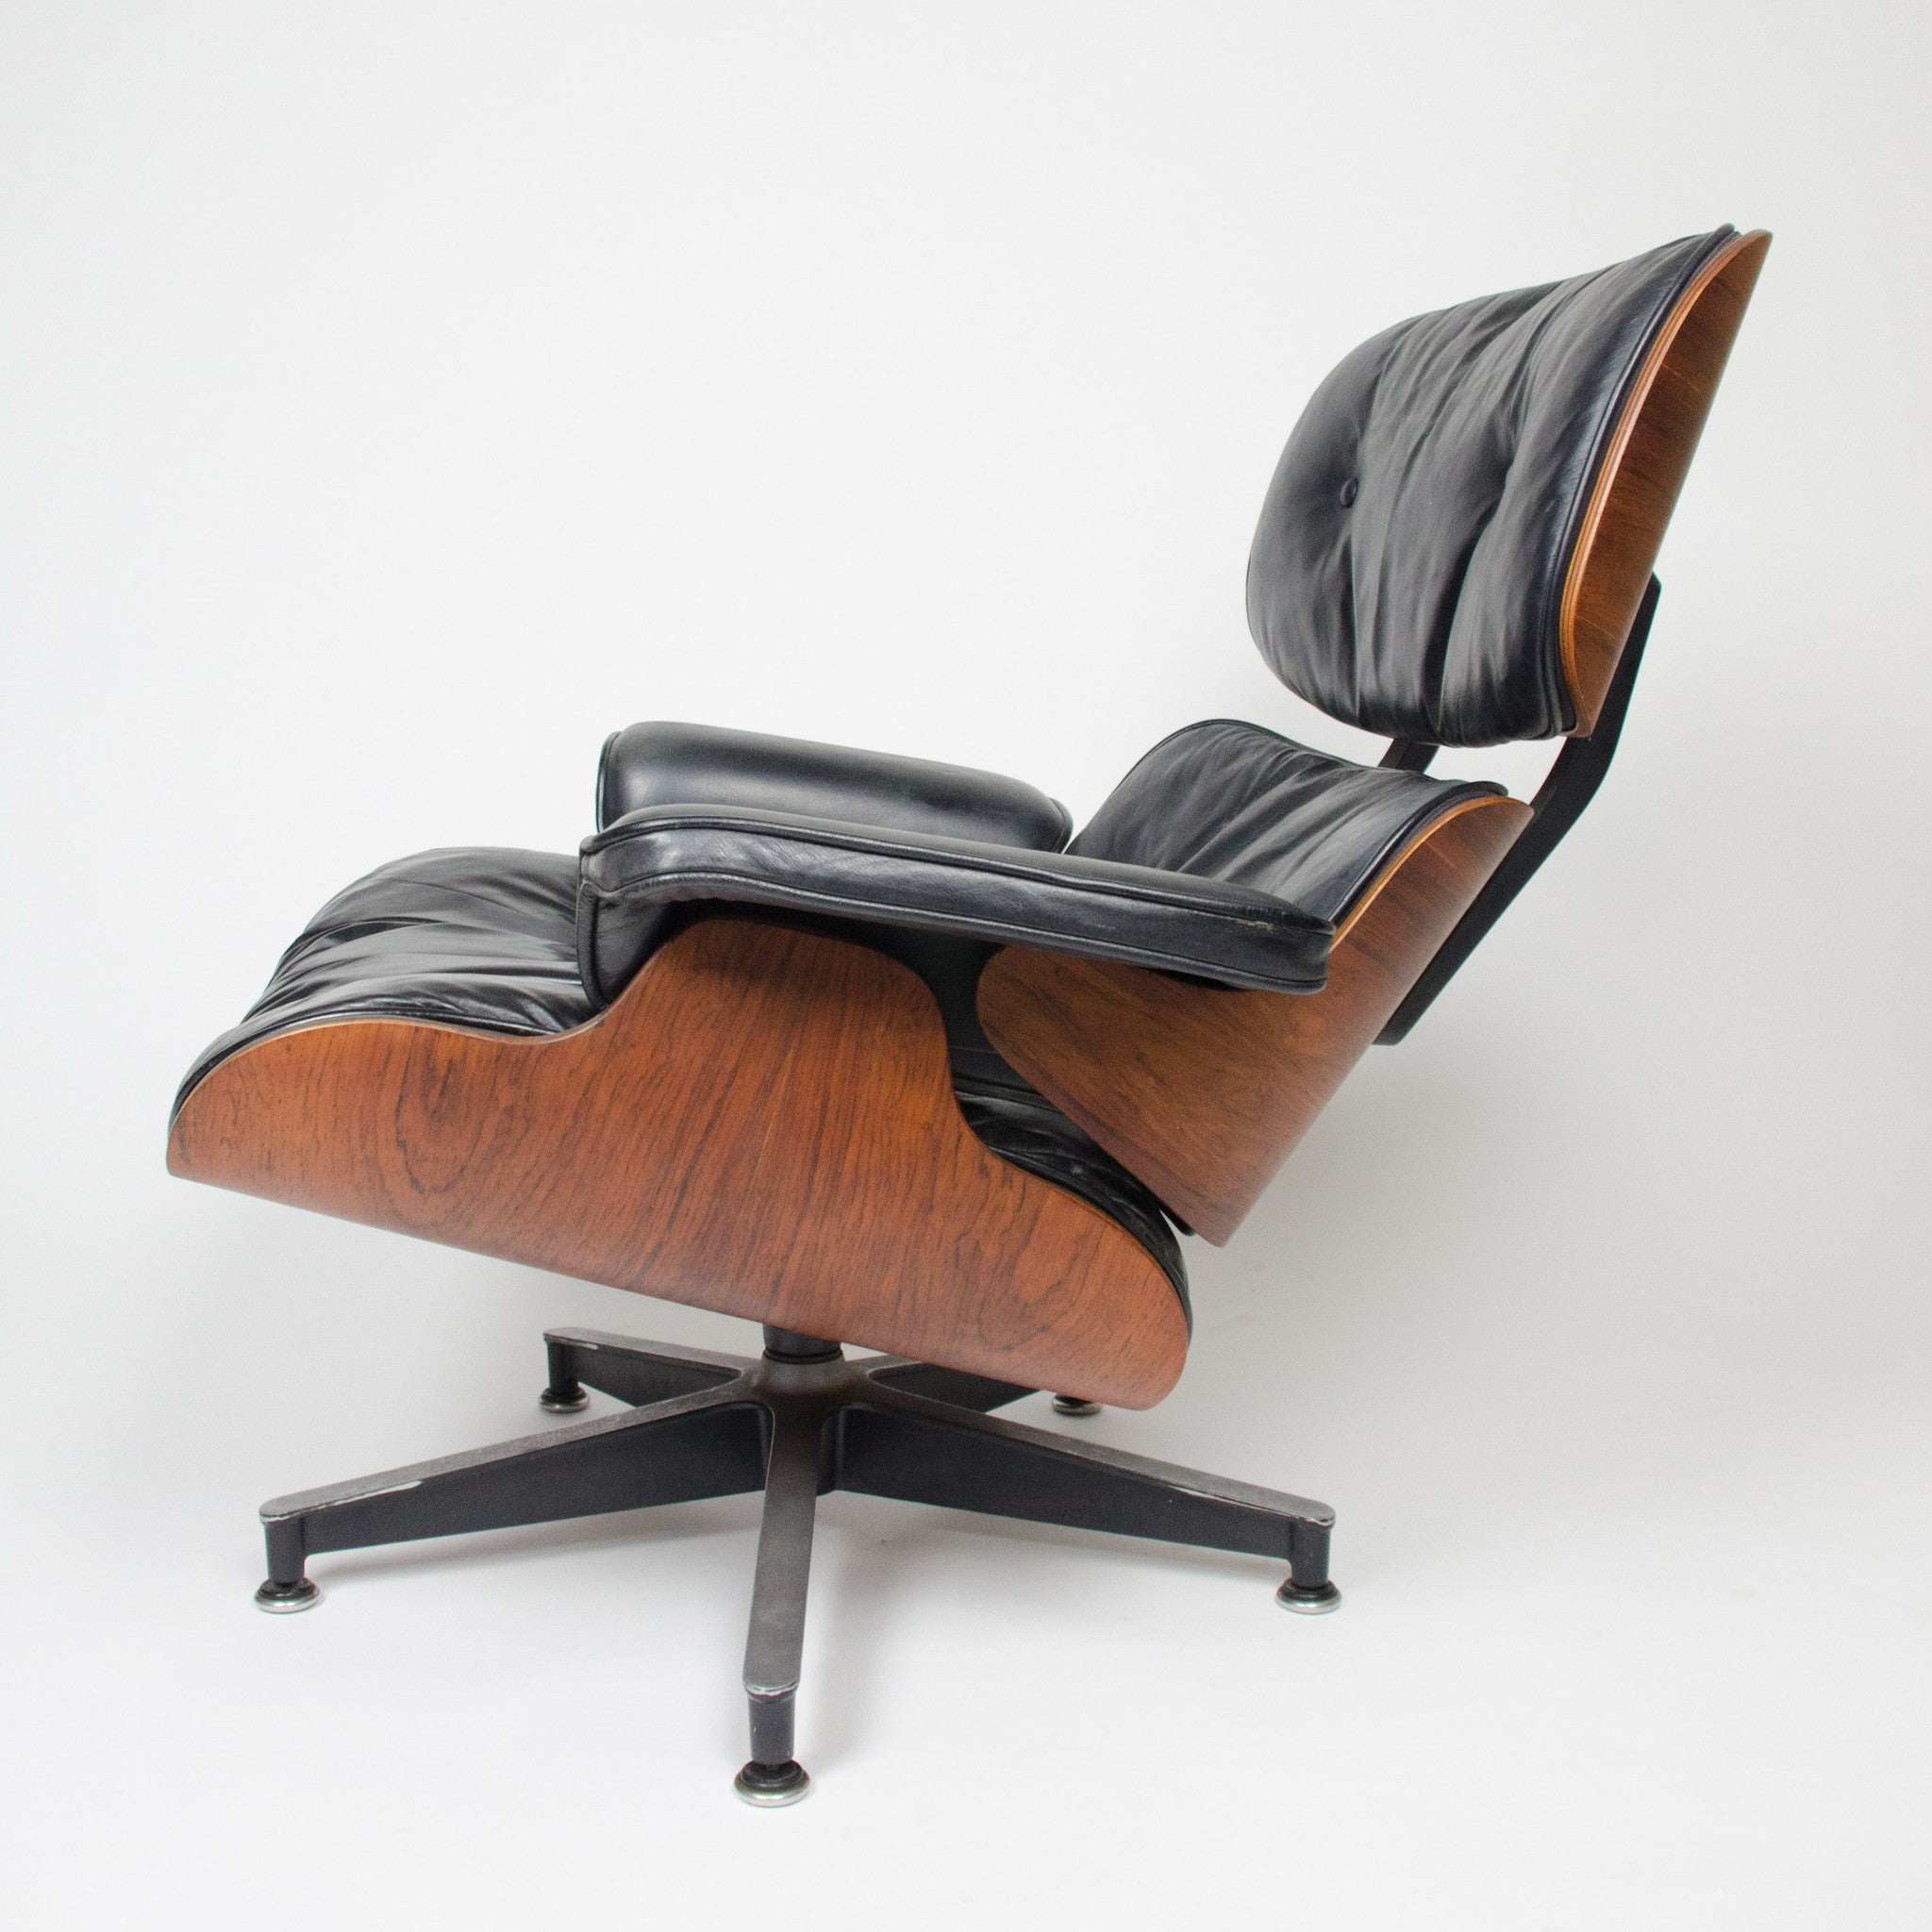 SOLD 1960's Herman Miller Eames Lounge Chair & Ottoman Rosewood 670 671